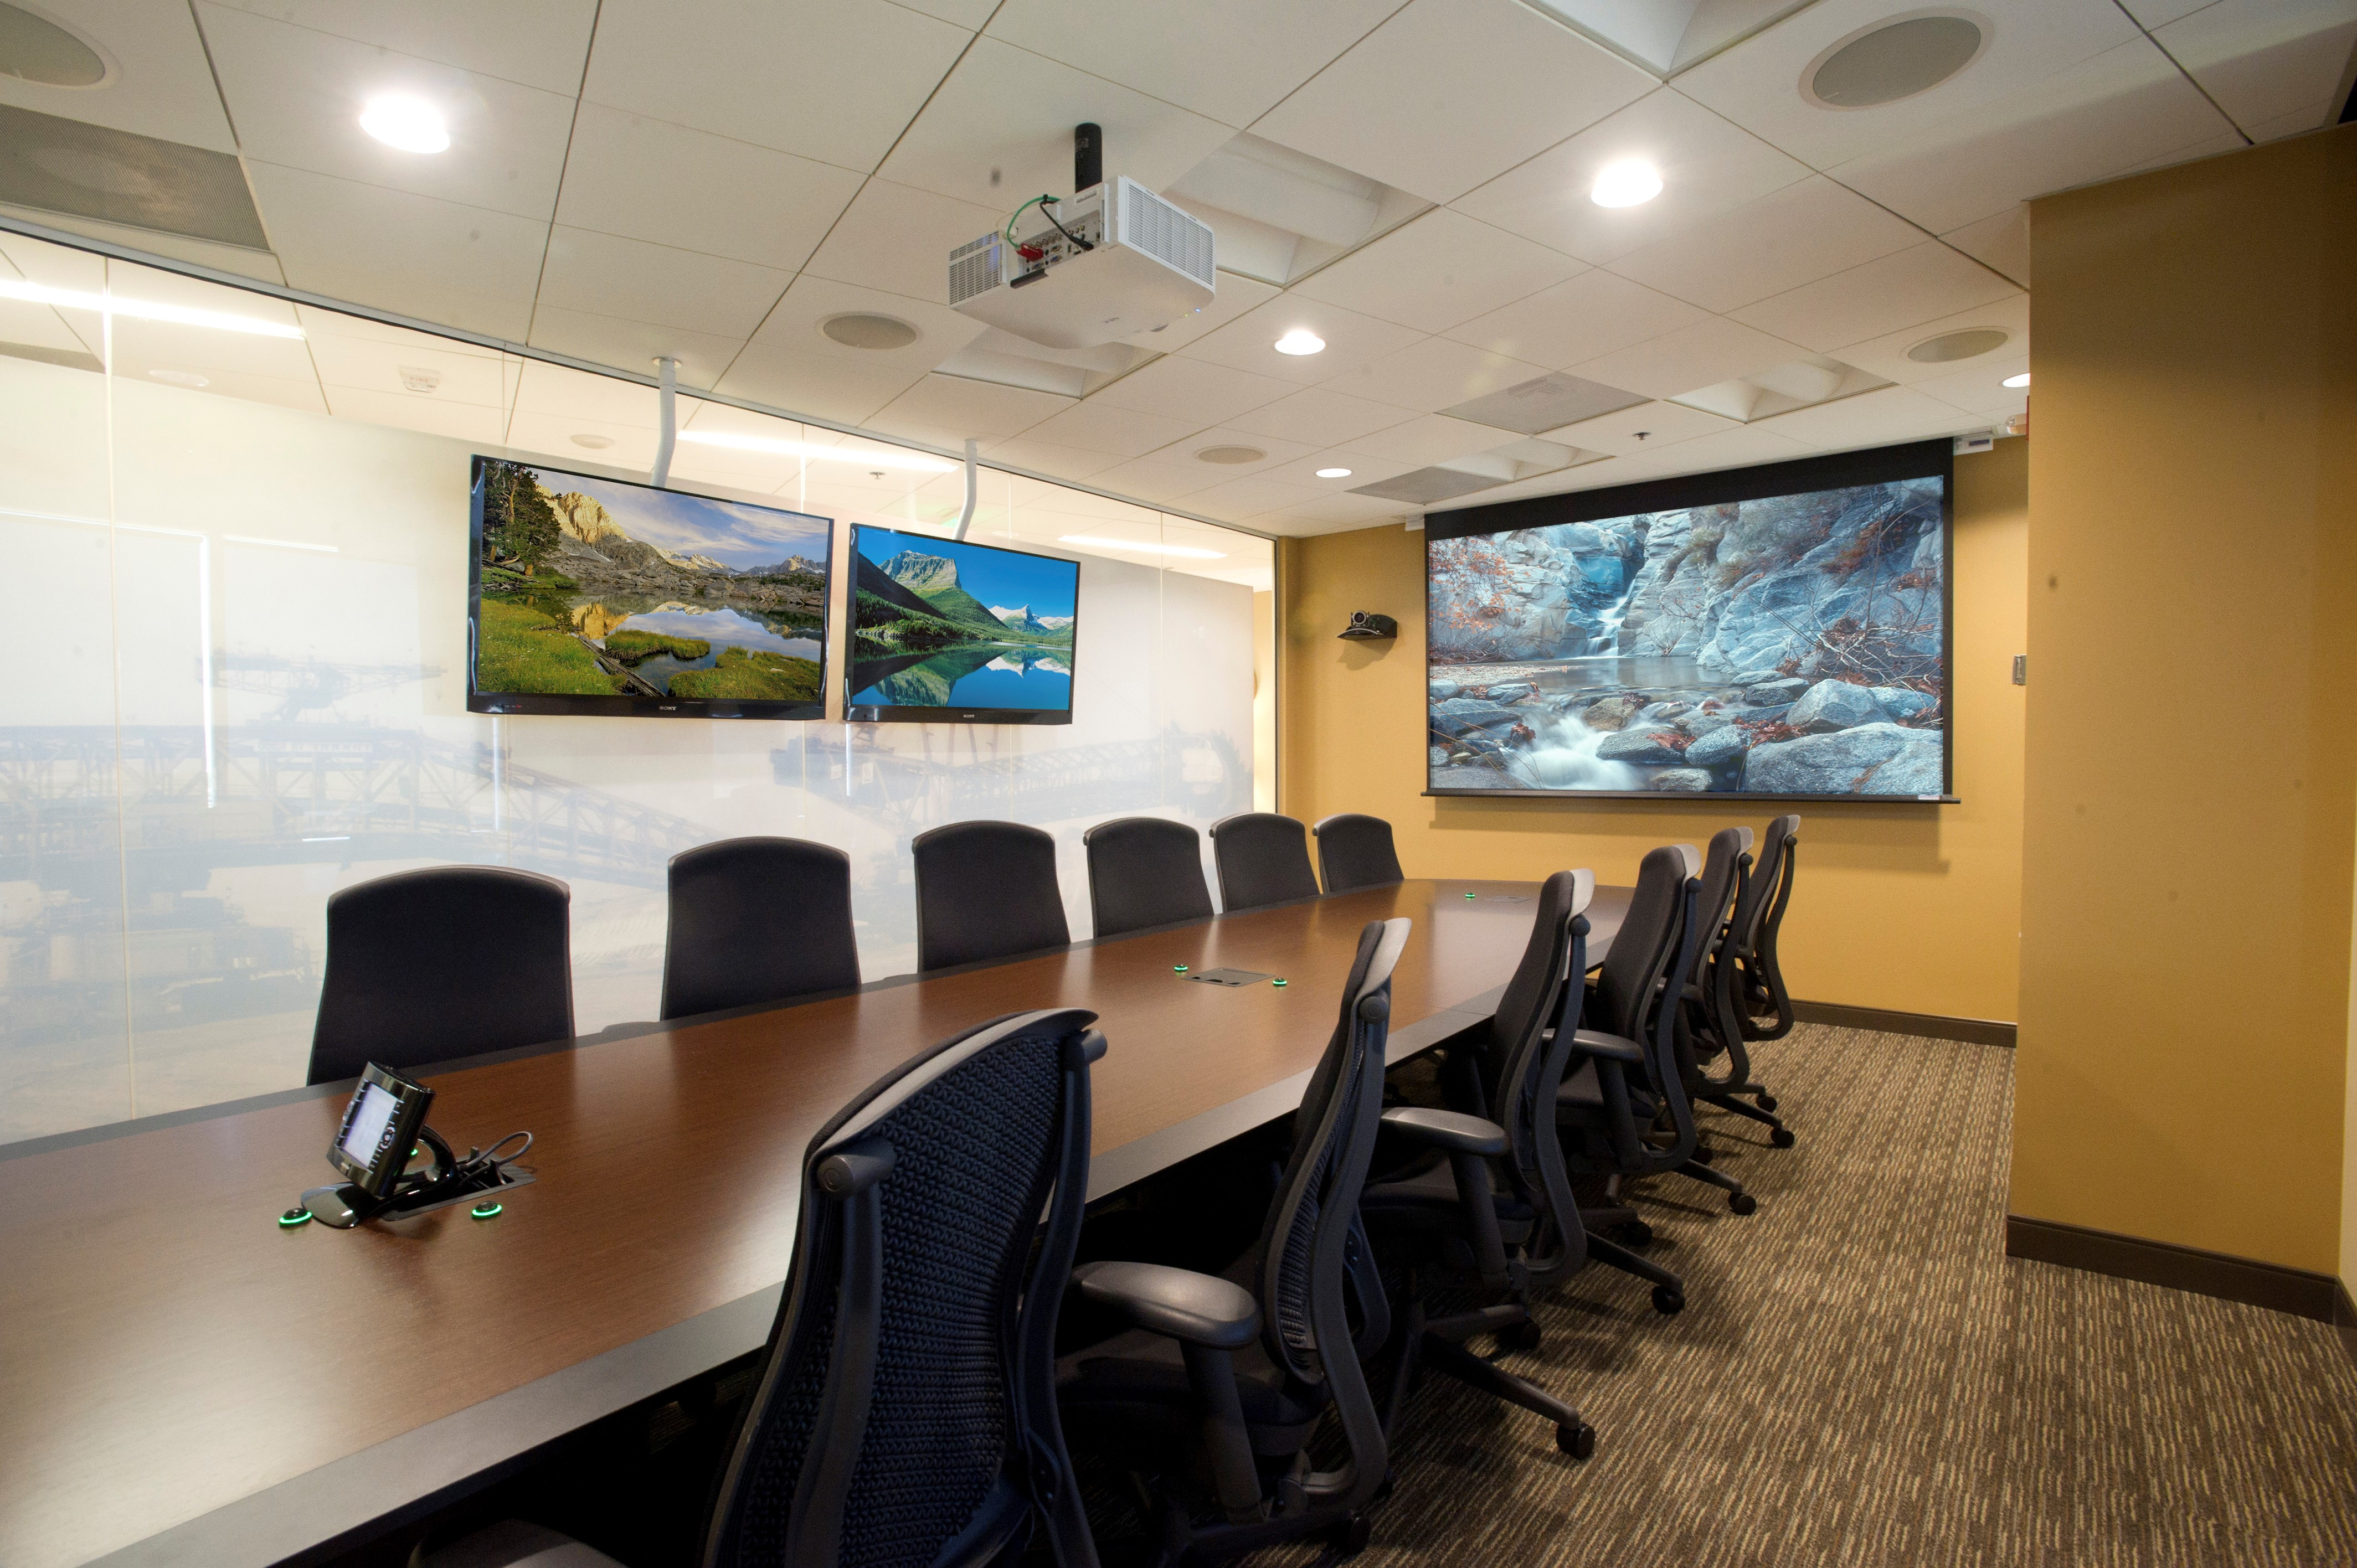 What Can You Control With Your Boardroom Automation System?